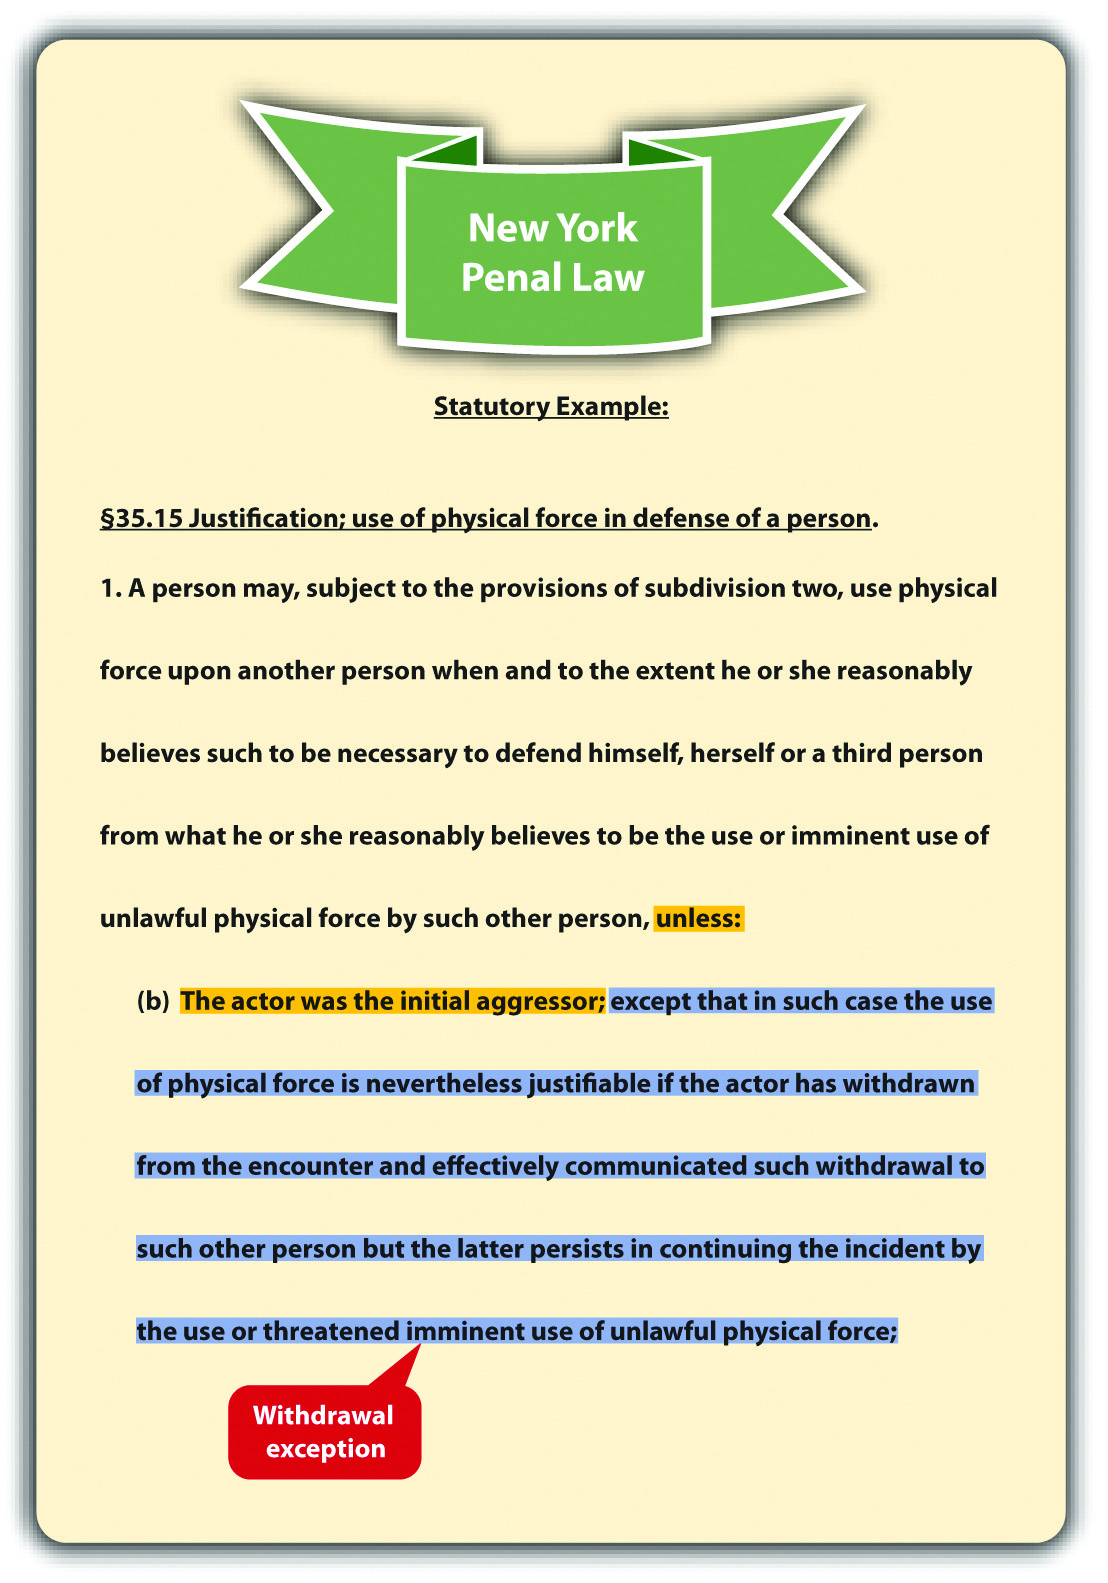 New York Penal Law